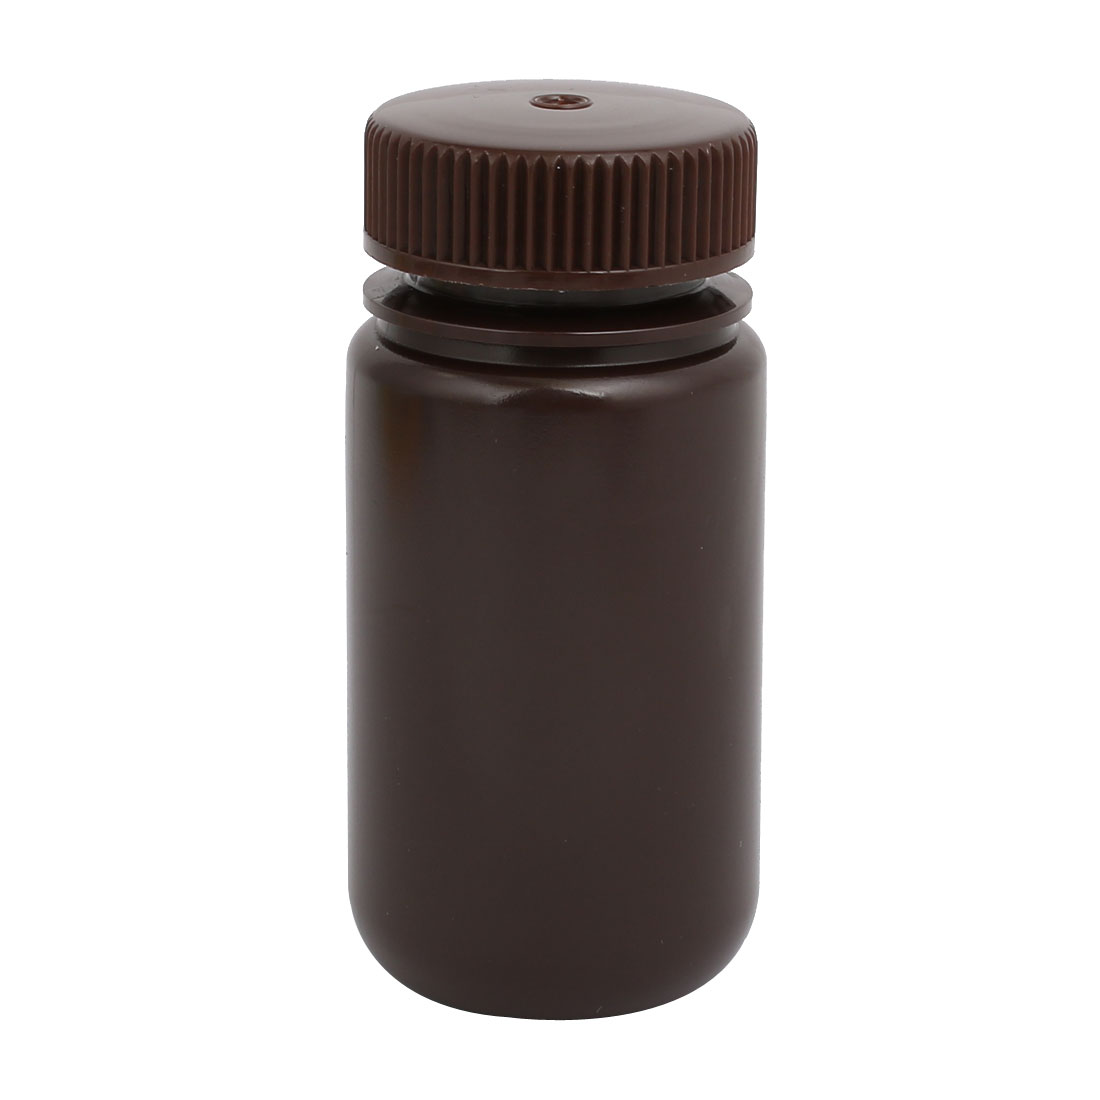 100ml 27mm Diameter HDPE Plastic Round Wide Mouth Laboratory Bottle Brown